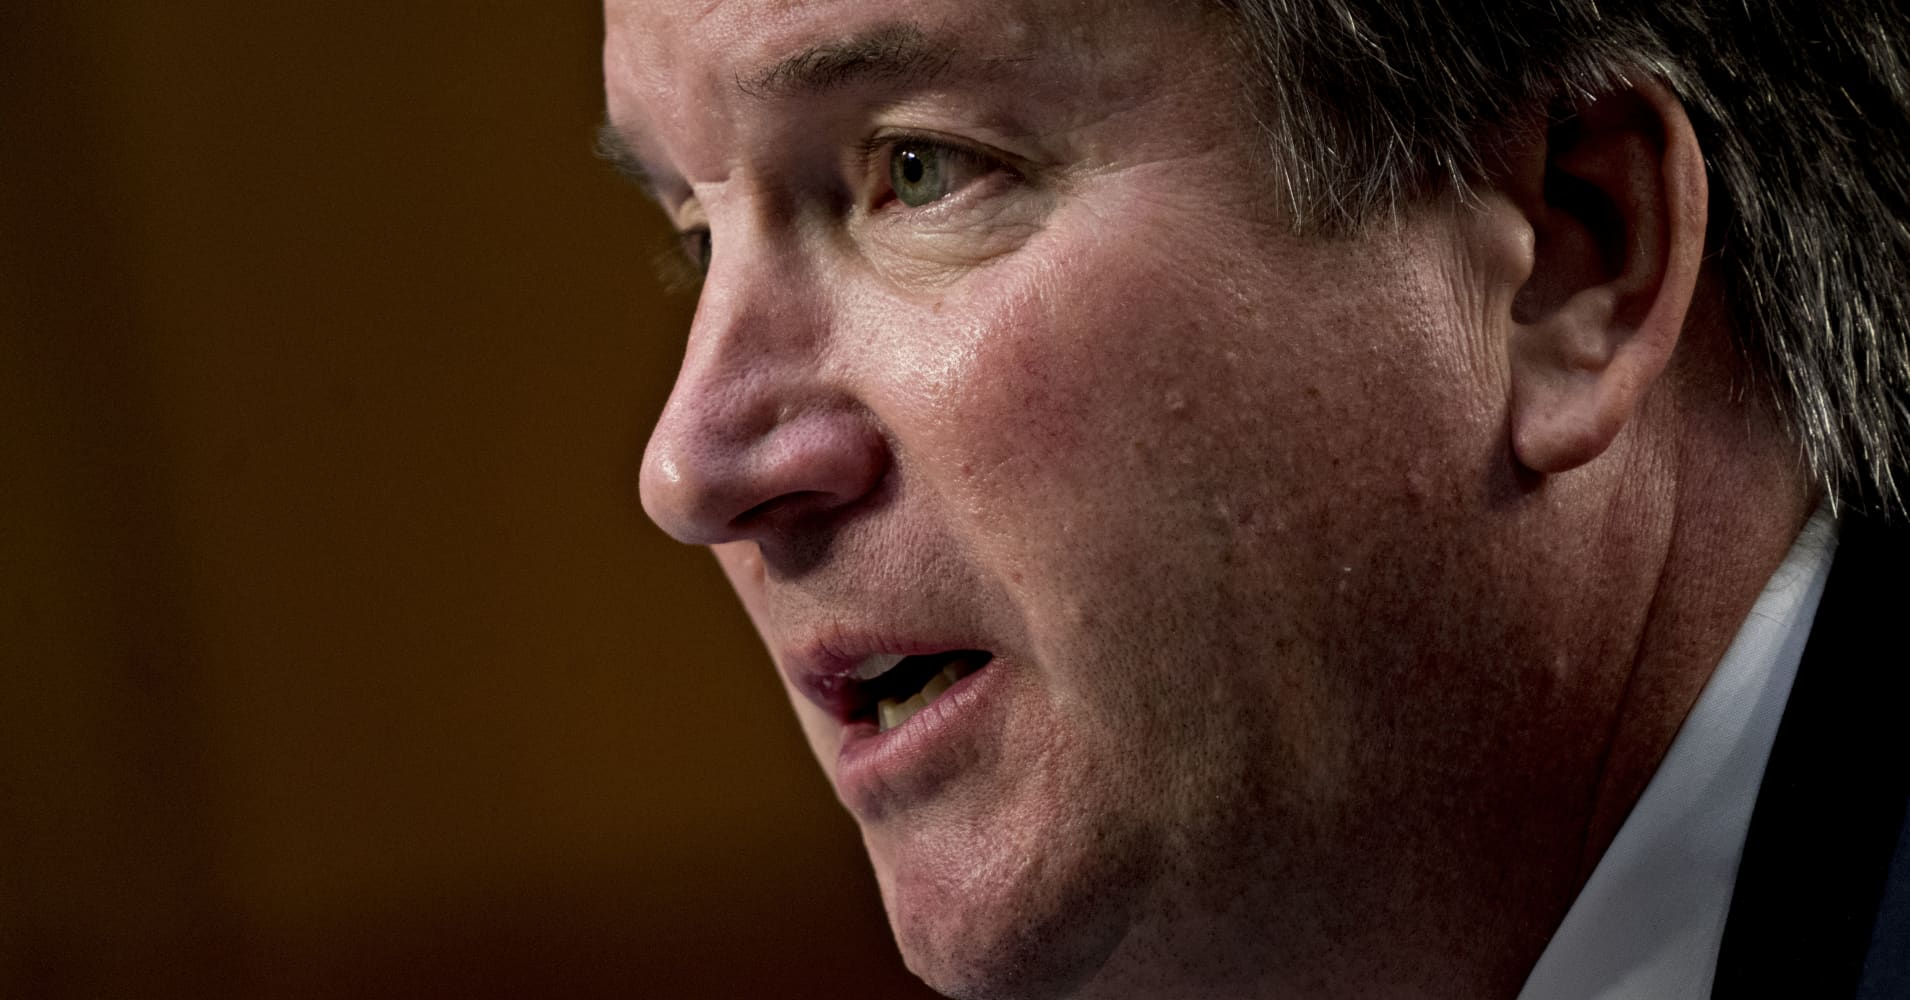 Kavanaugh vows 'last-minute character assassination' will not force him to withdraw